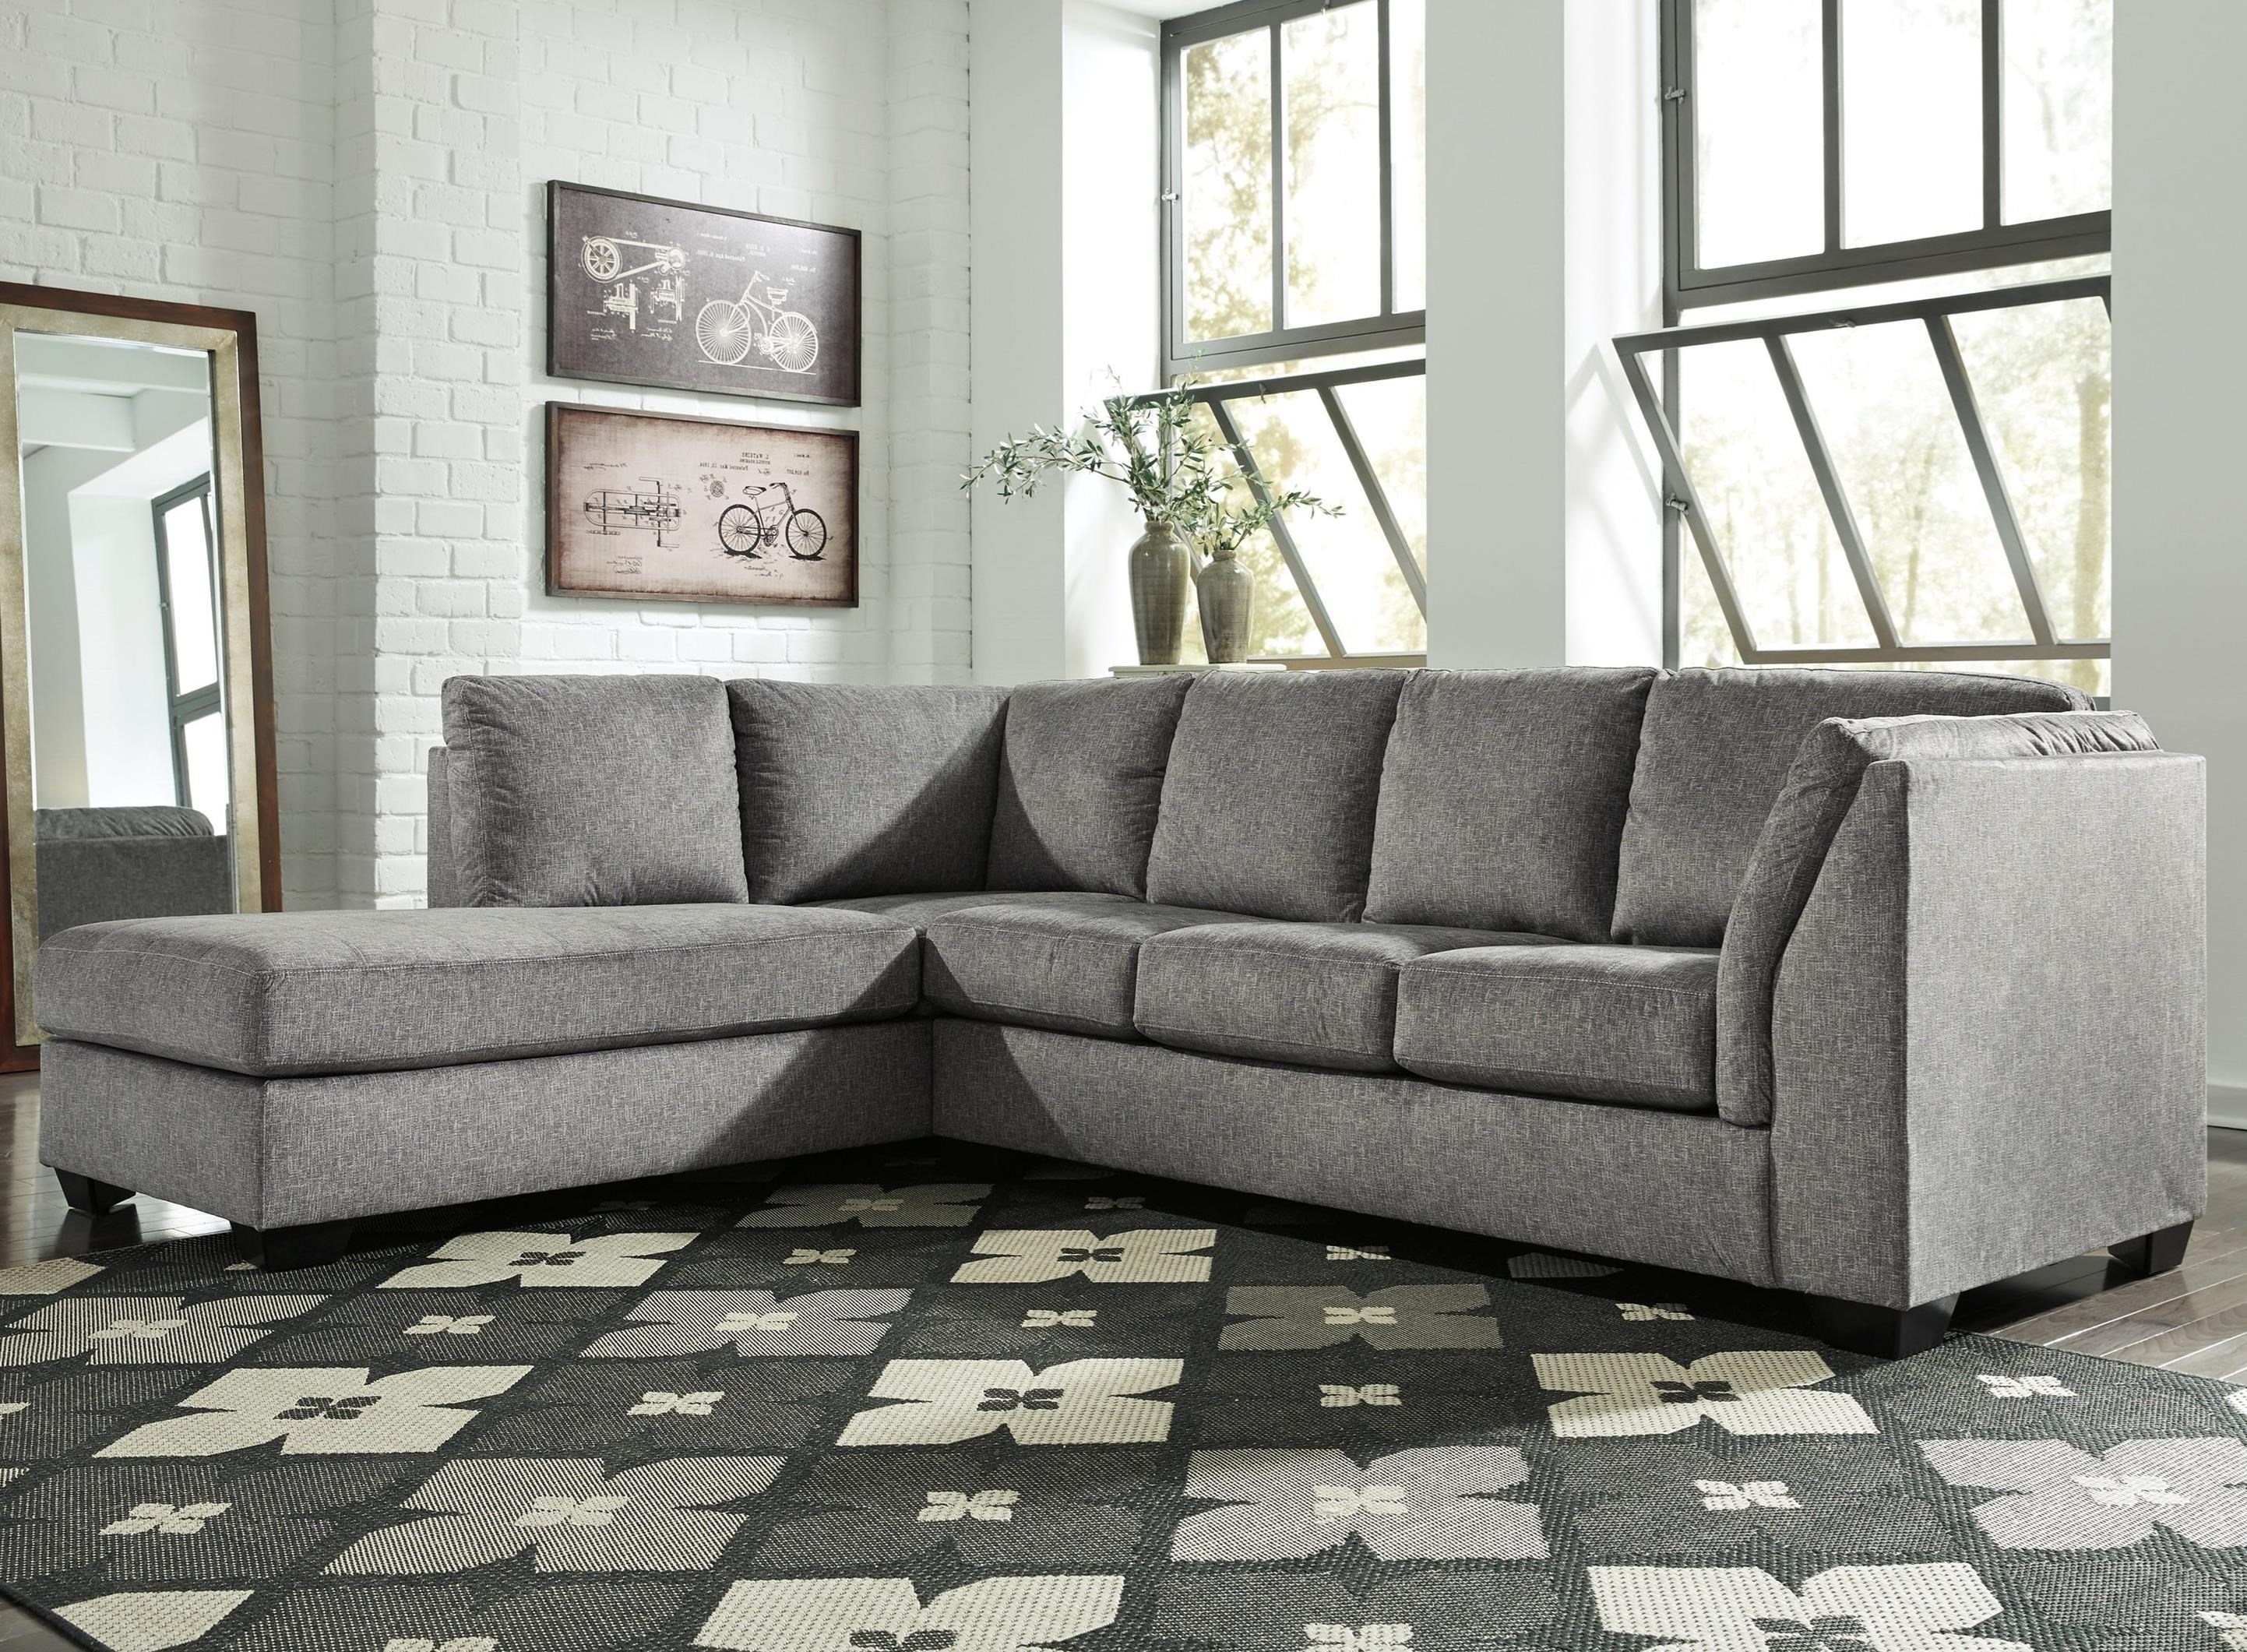 Belcastel 2 Piece Sectional With Left Chaise In Gray Fabric | Becker In Blaine 4 Piece Sectionals (Image 2 of 25)